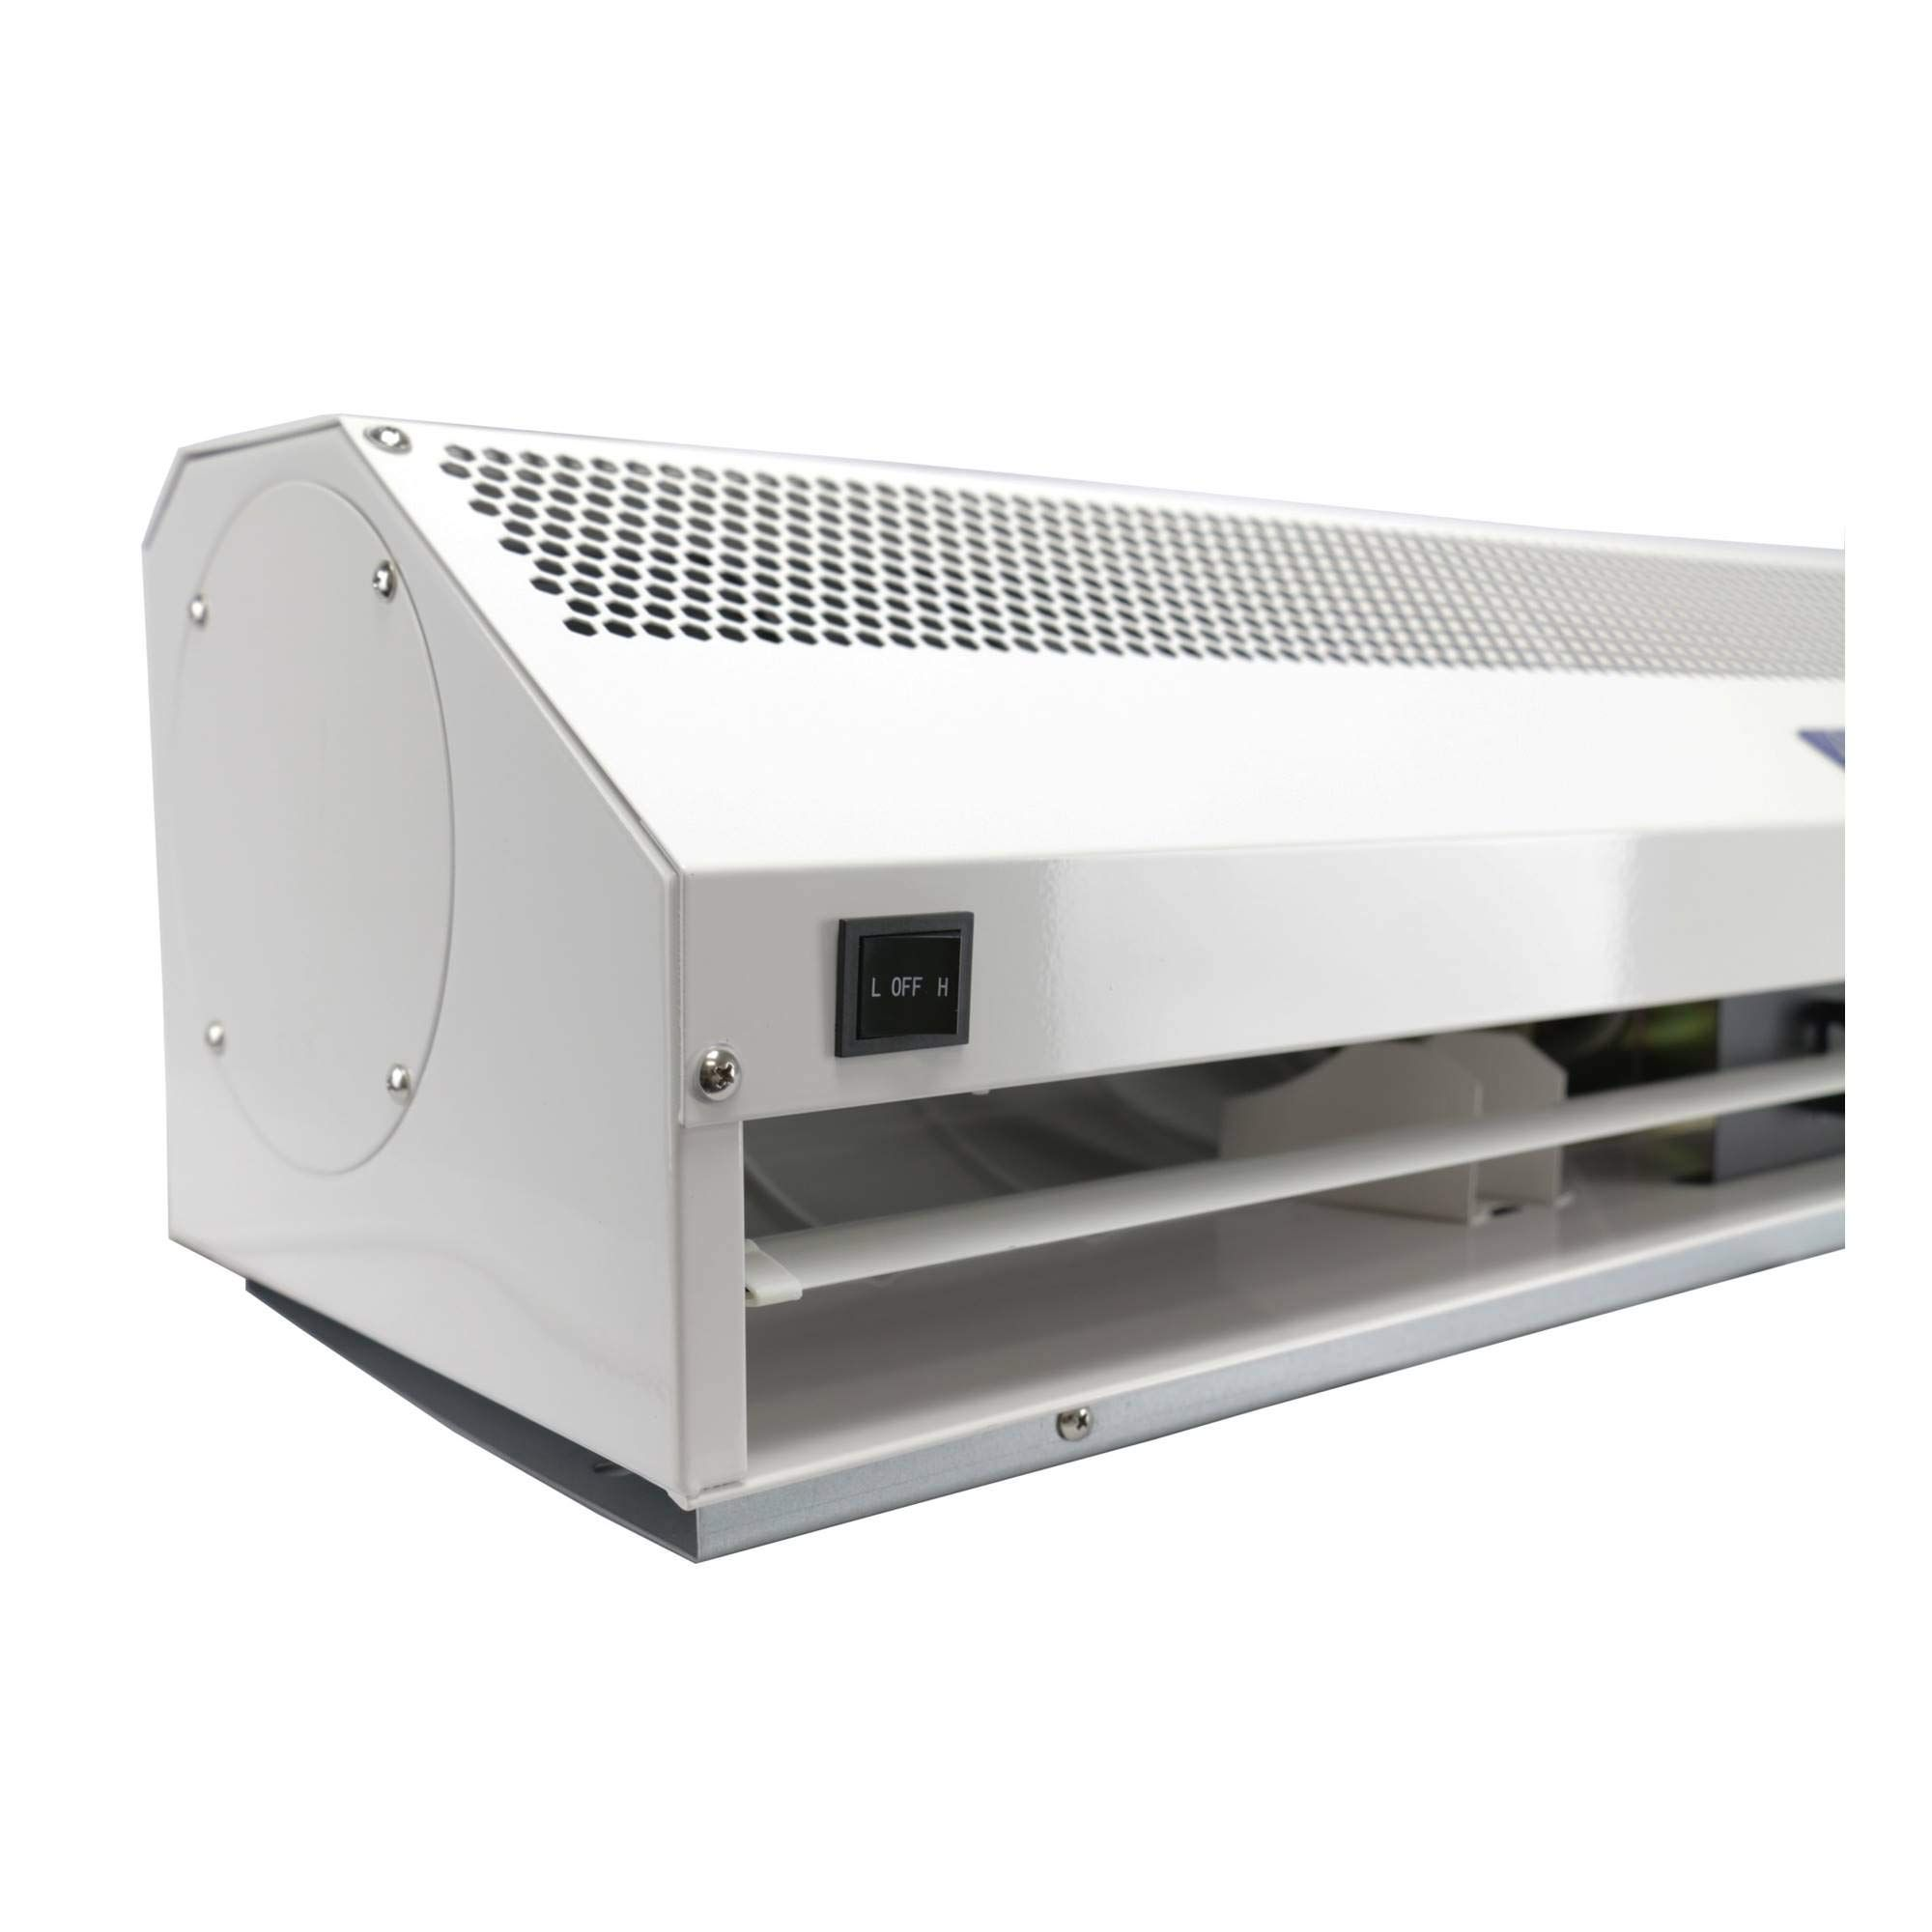 Awoco 40 super power 2 speeds indoor air curtain with